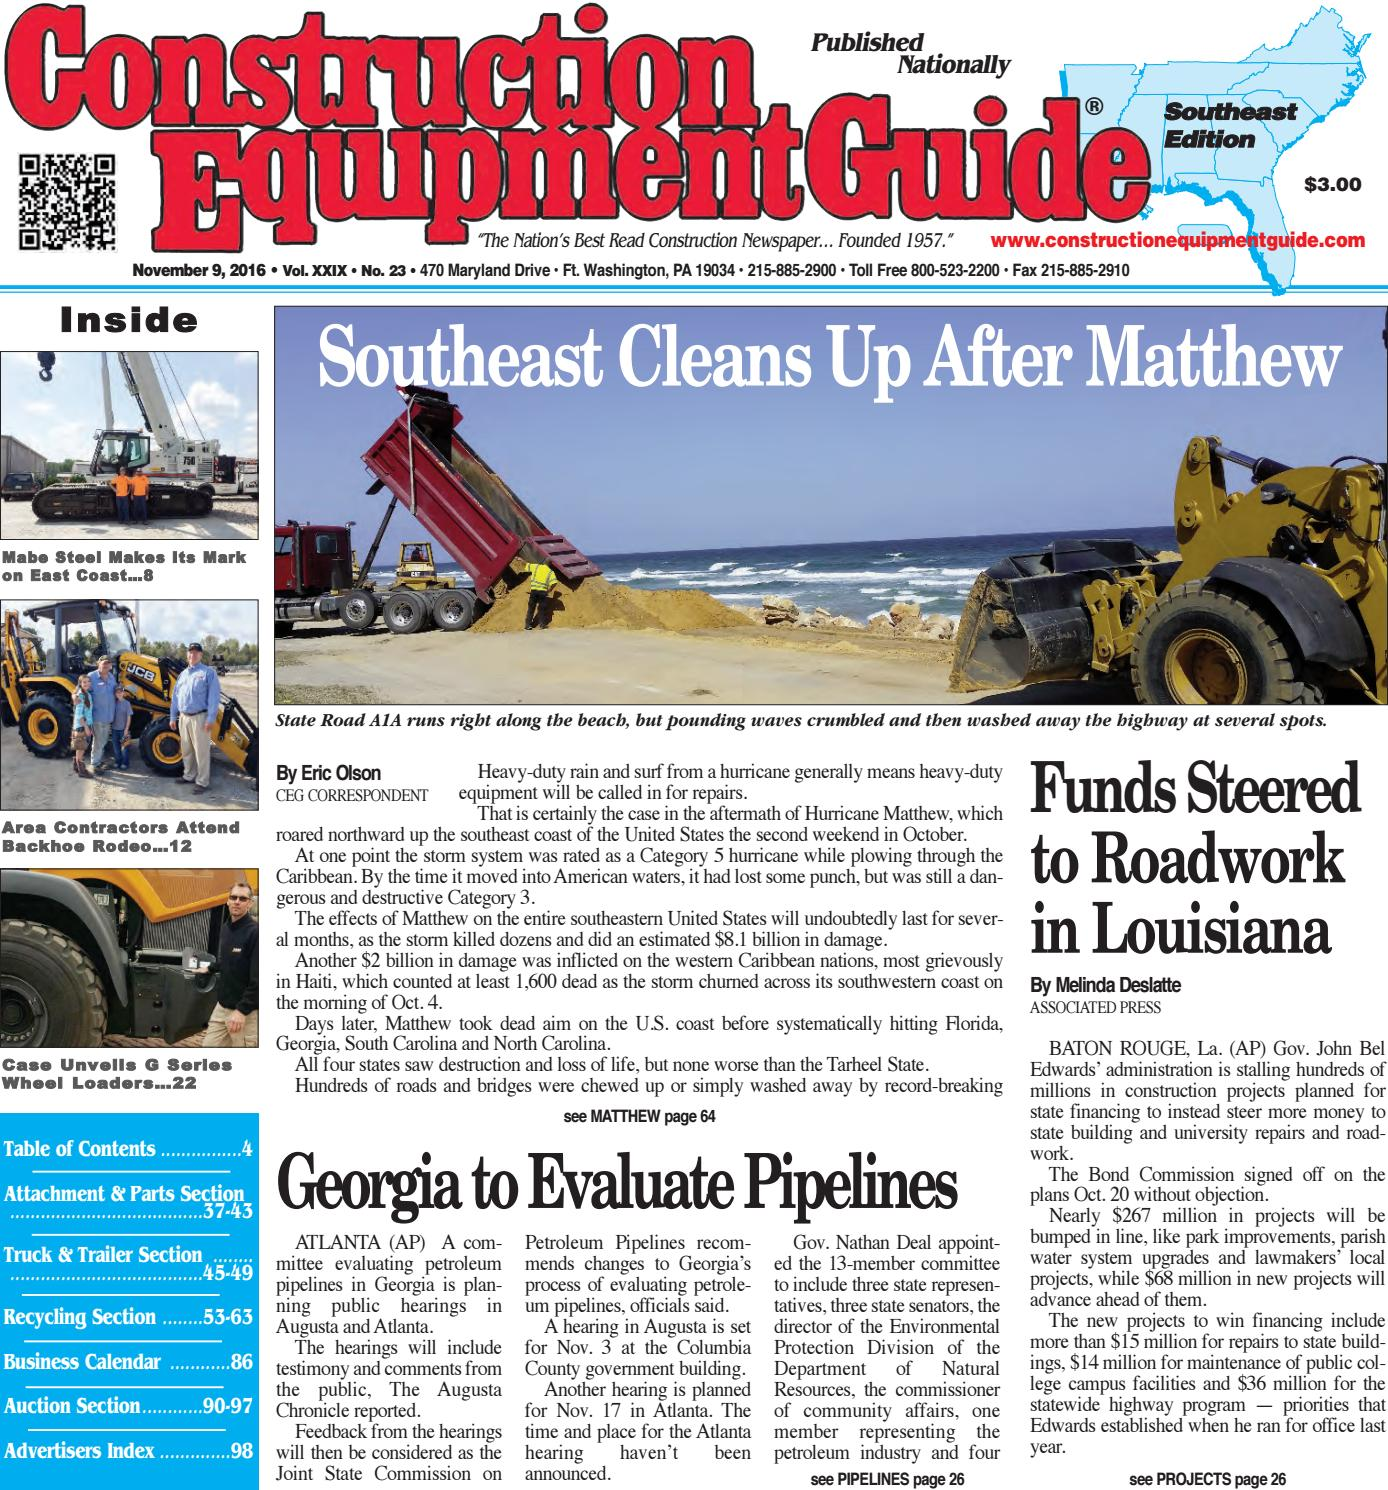 Southeast 23 - November 9, 2016 by Construction Equipment Guide - issuu